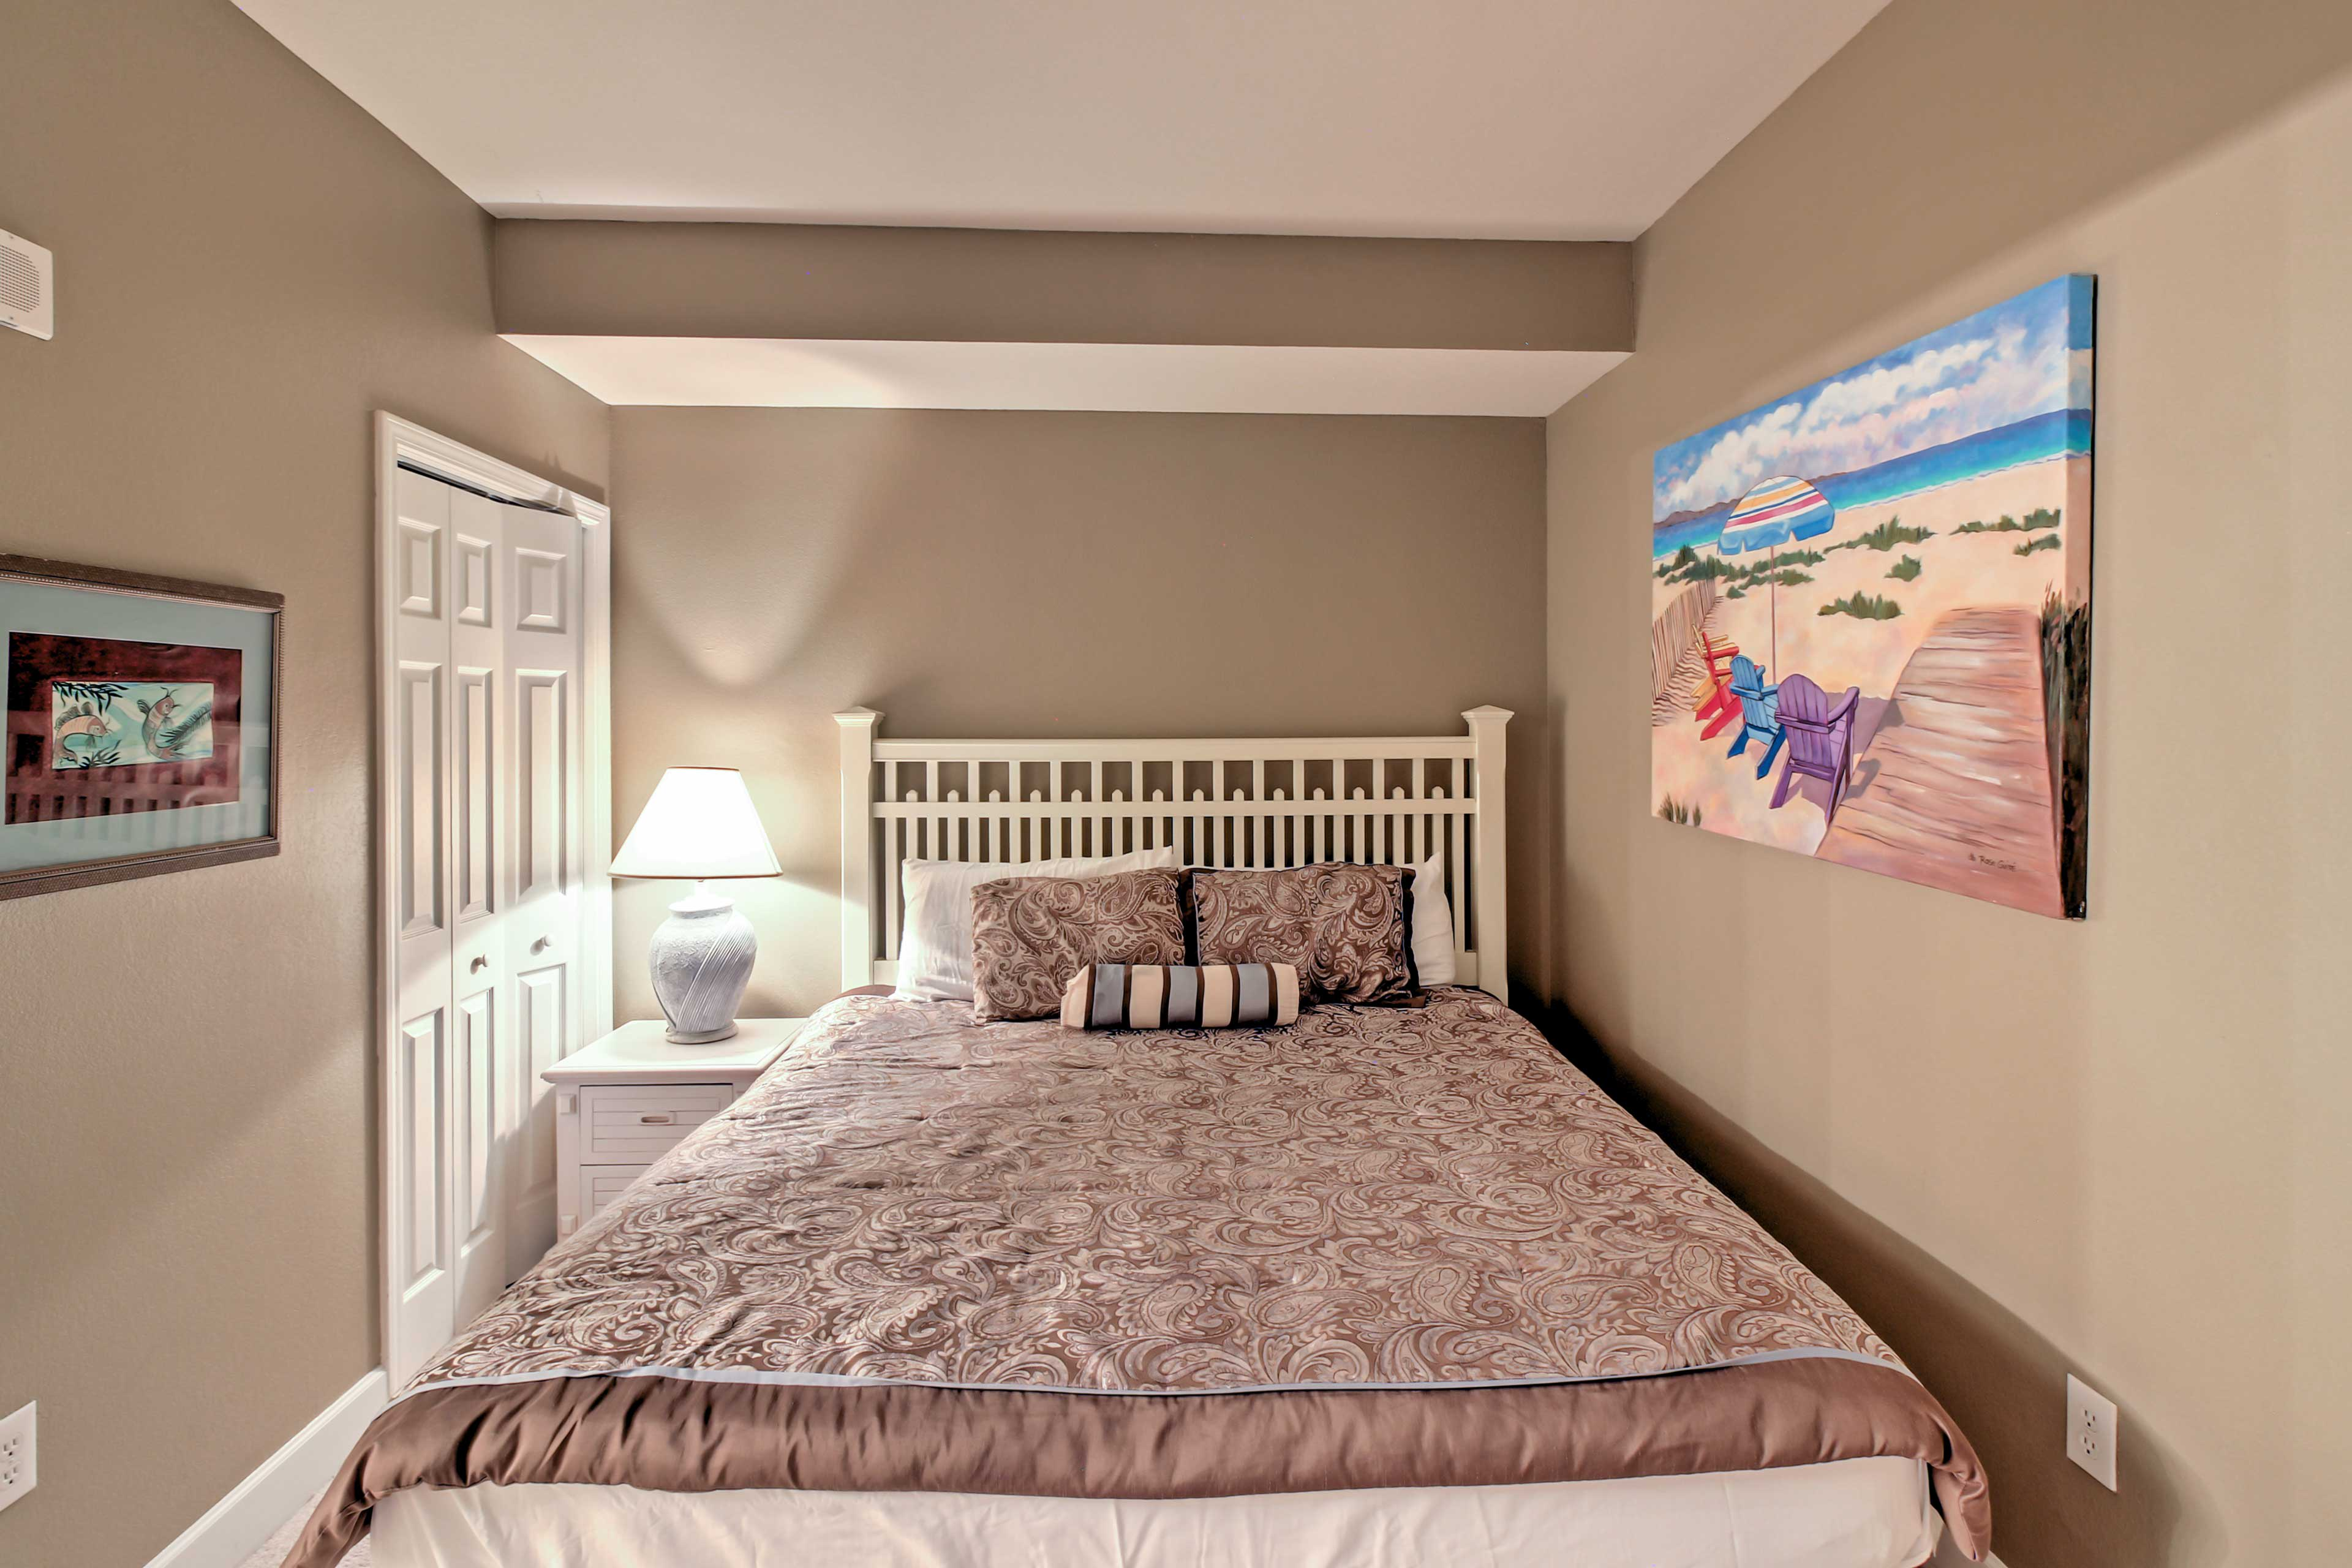 Two guests will sleep comfortably in the master bedroom with a king-sized bed.